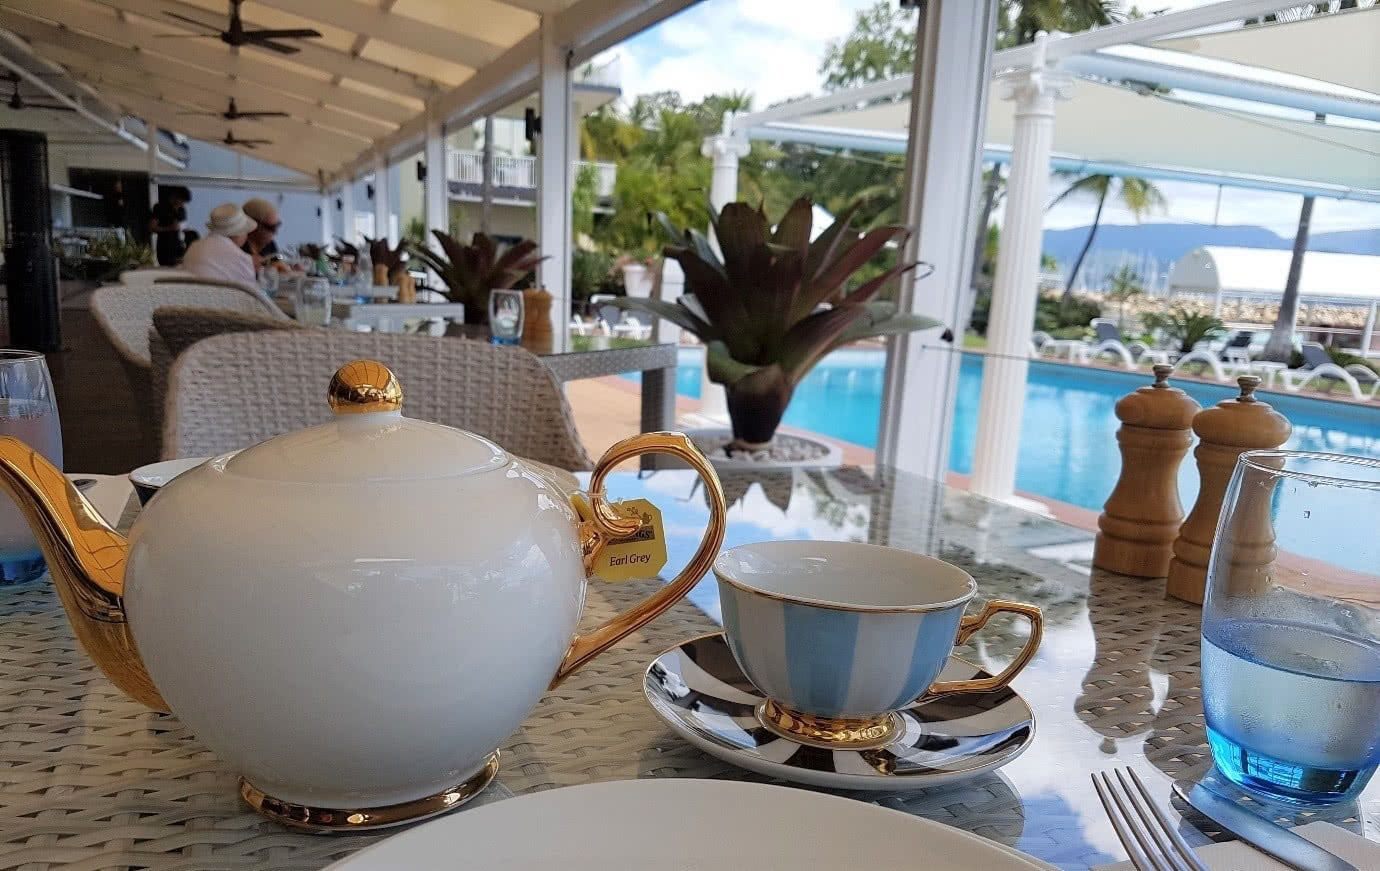 Stunning views and sumptuous afternoon tea!